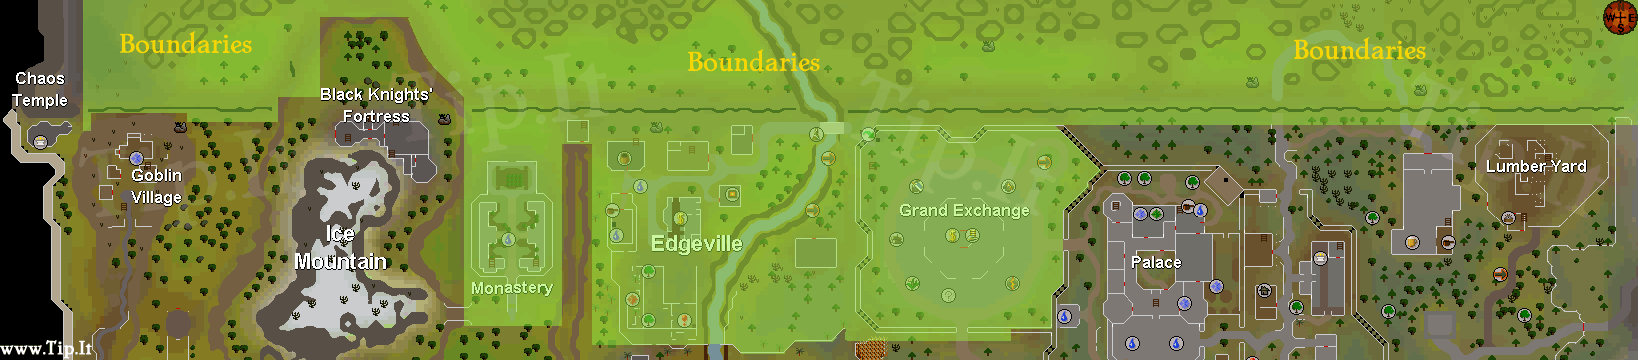 runescape world map free